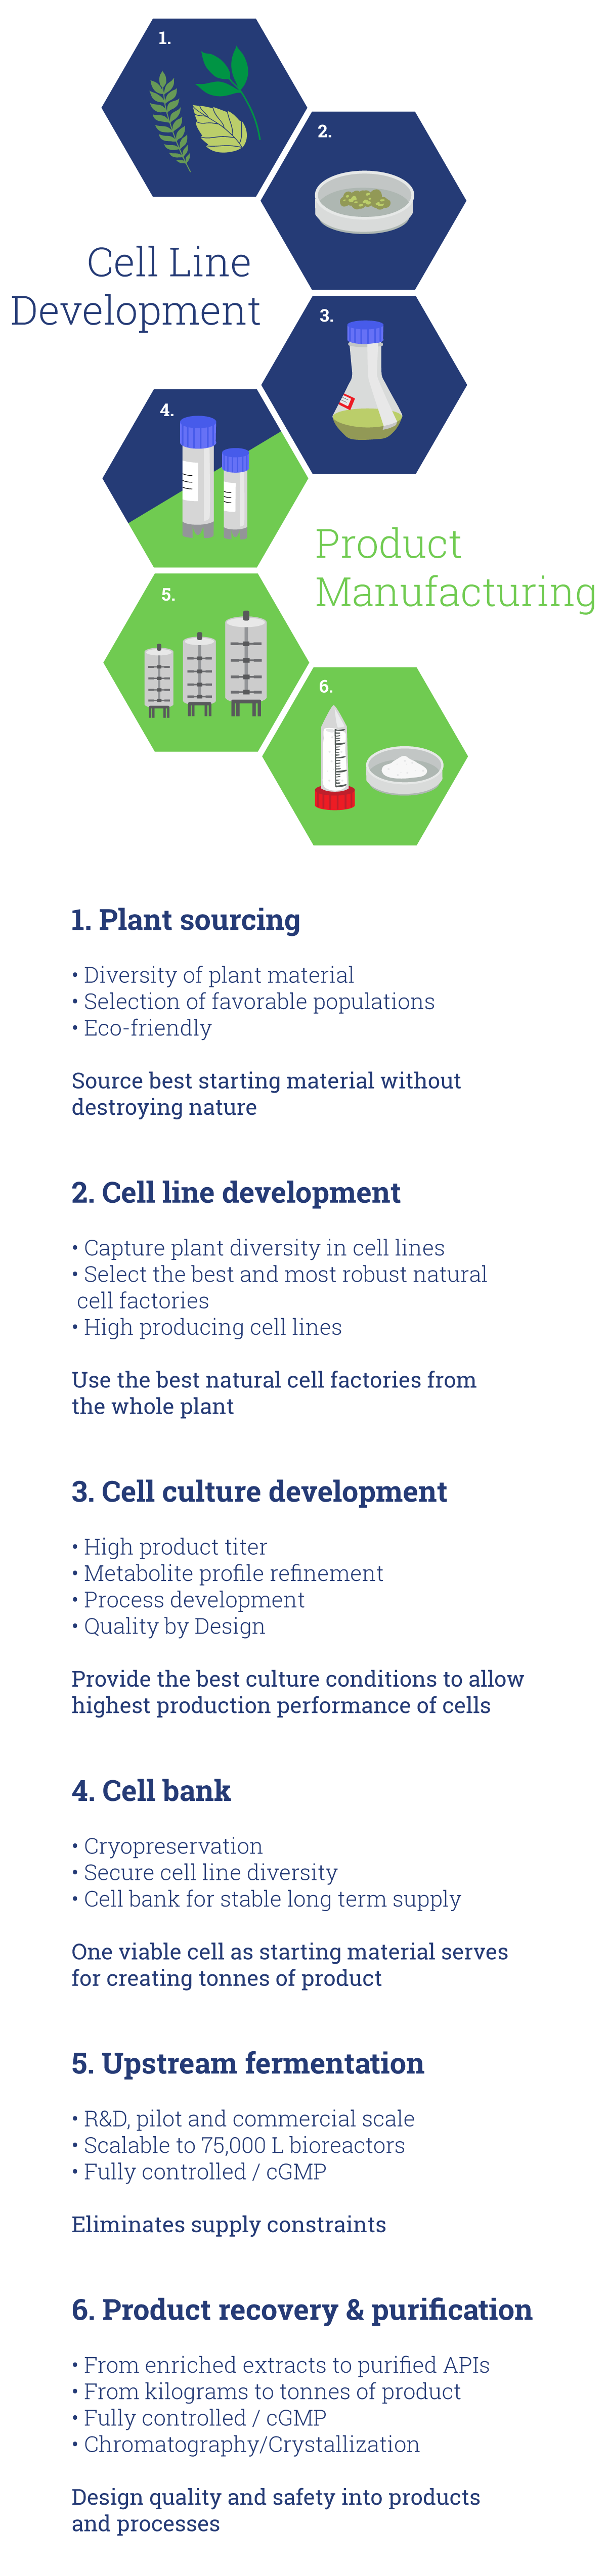 Phyton Biotech Plant Cell Fermentation Process Infographic